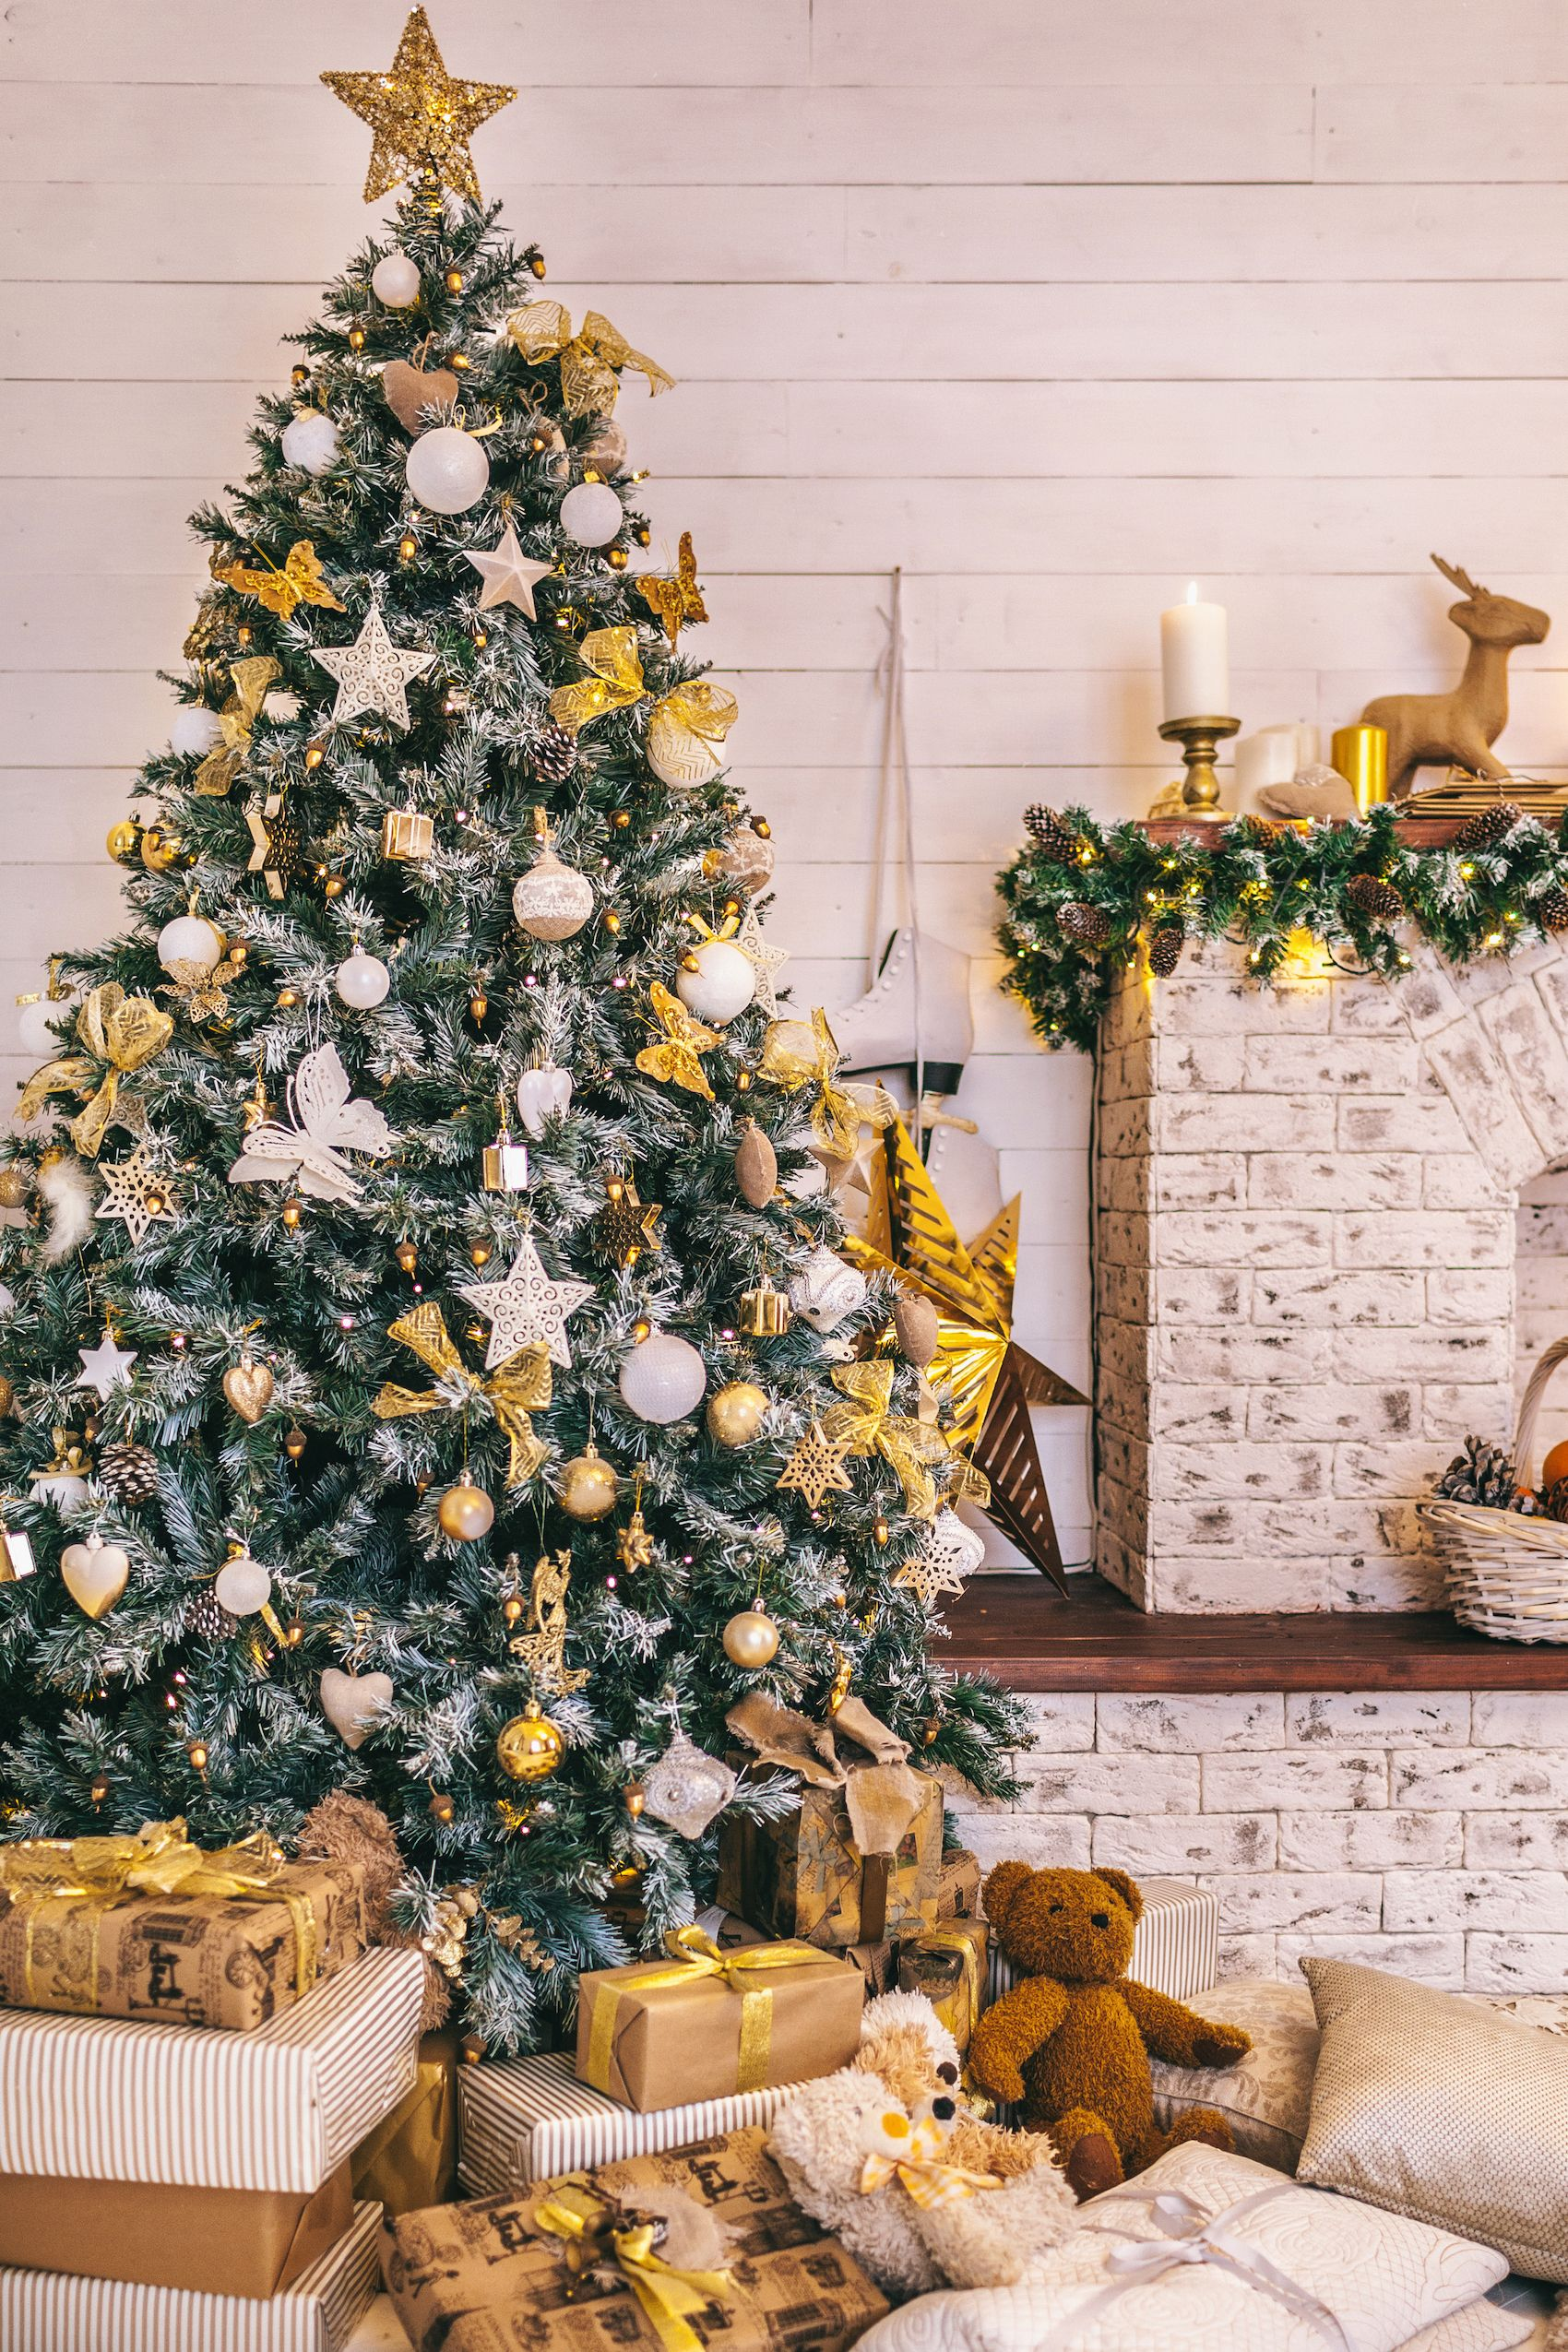 50 Decorated Christmas Tree Ideas , Pictures of Christmas